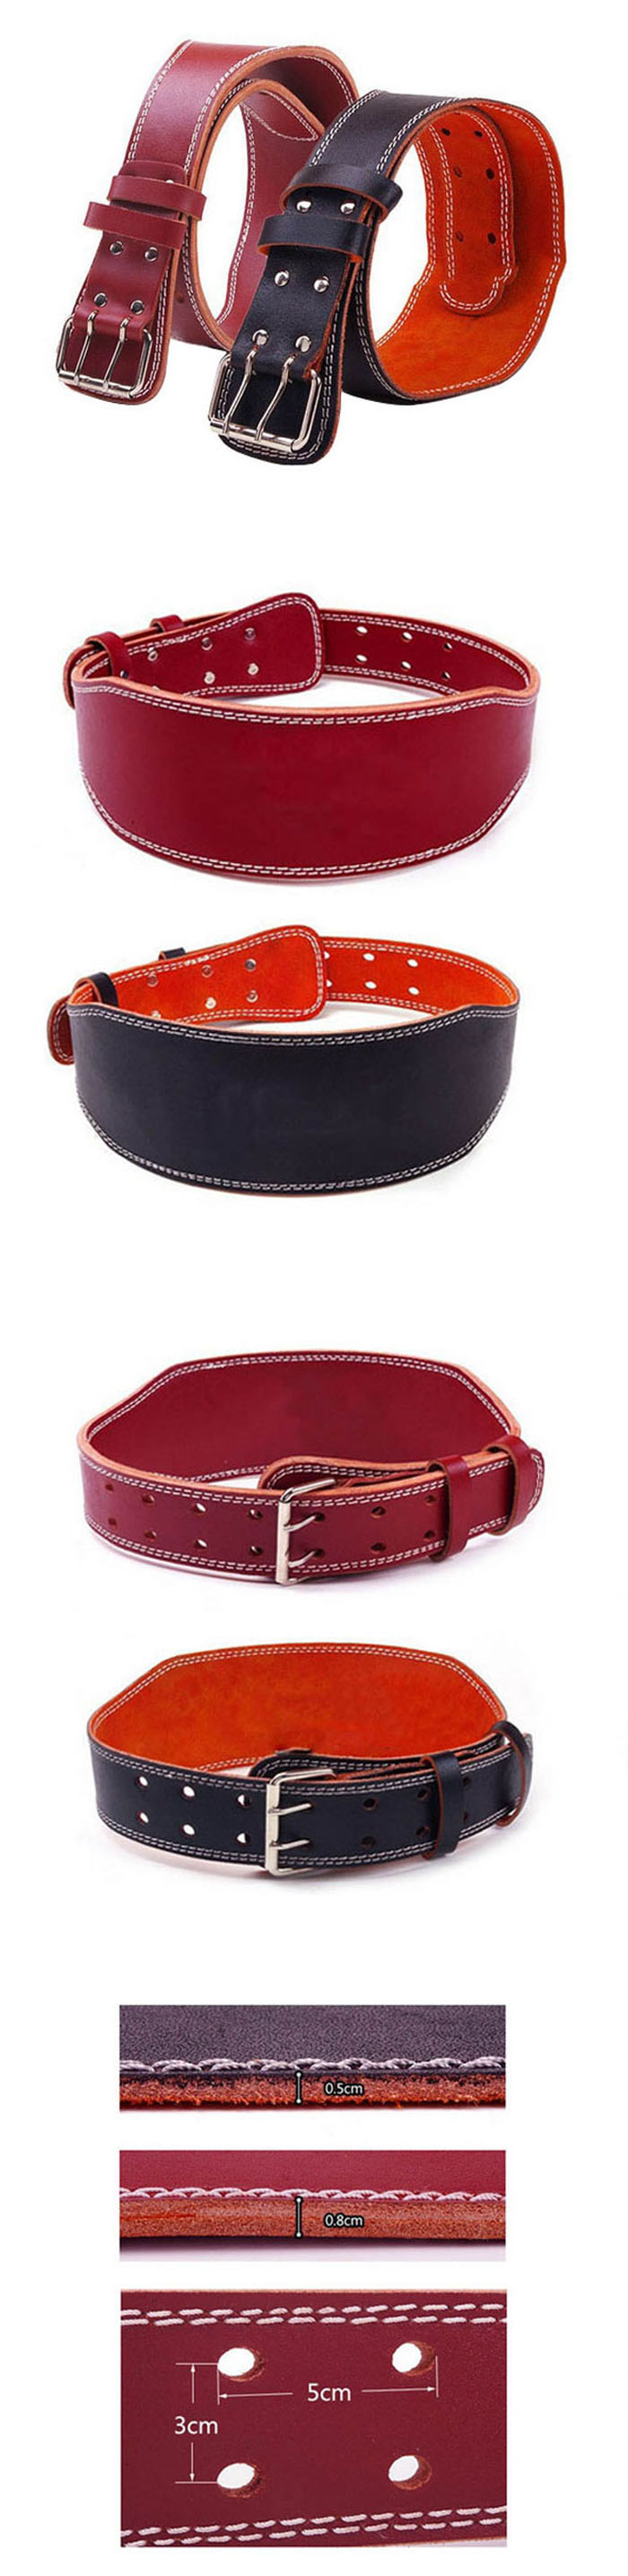 China factory professional custom leather weightlifting belt